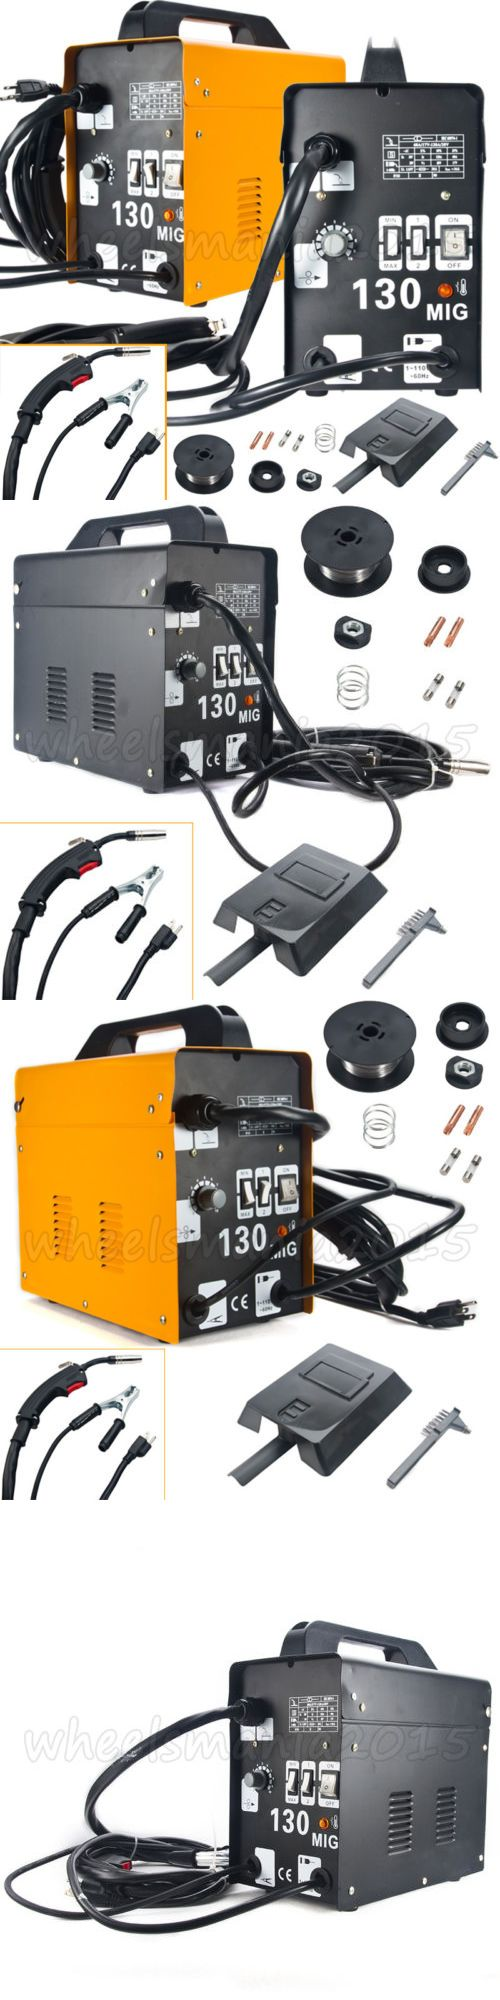 Welding and Soldering Tools 46413: New Mig Welder Auto Flux Core Wire Feed Welding Machine Diy Mig130 With Mask -> BUY IT NOW ONLY: $81.89 on eBay!